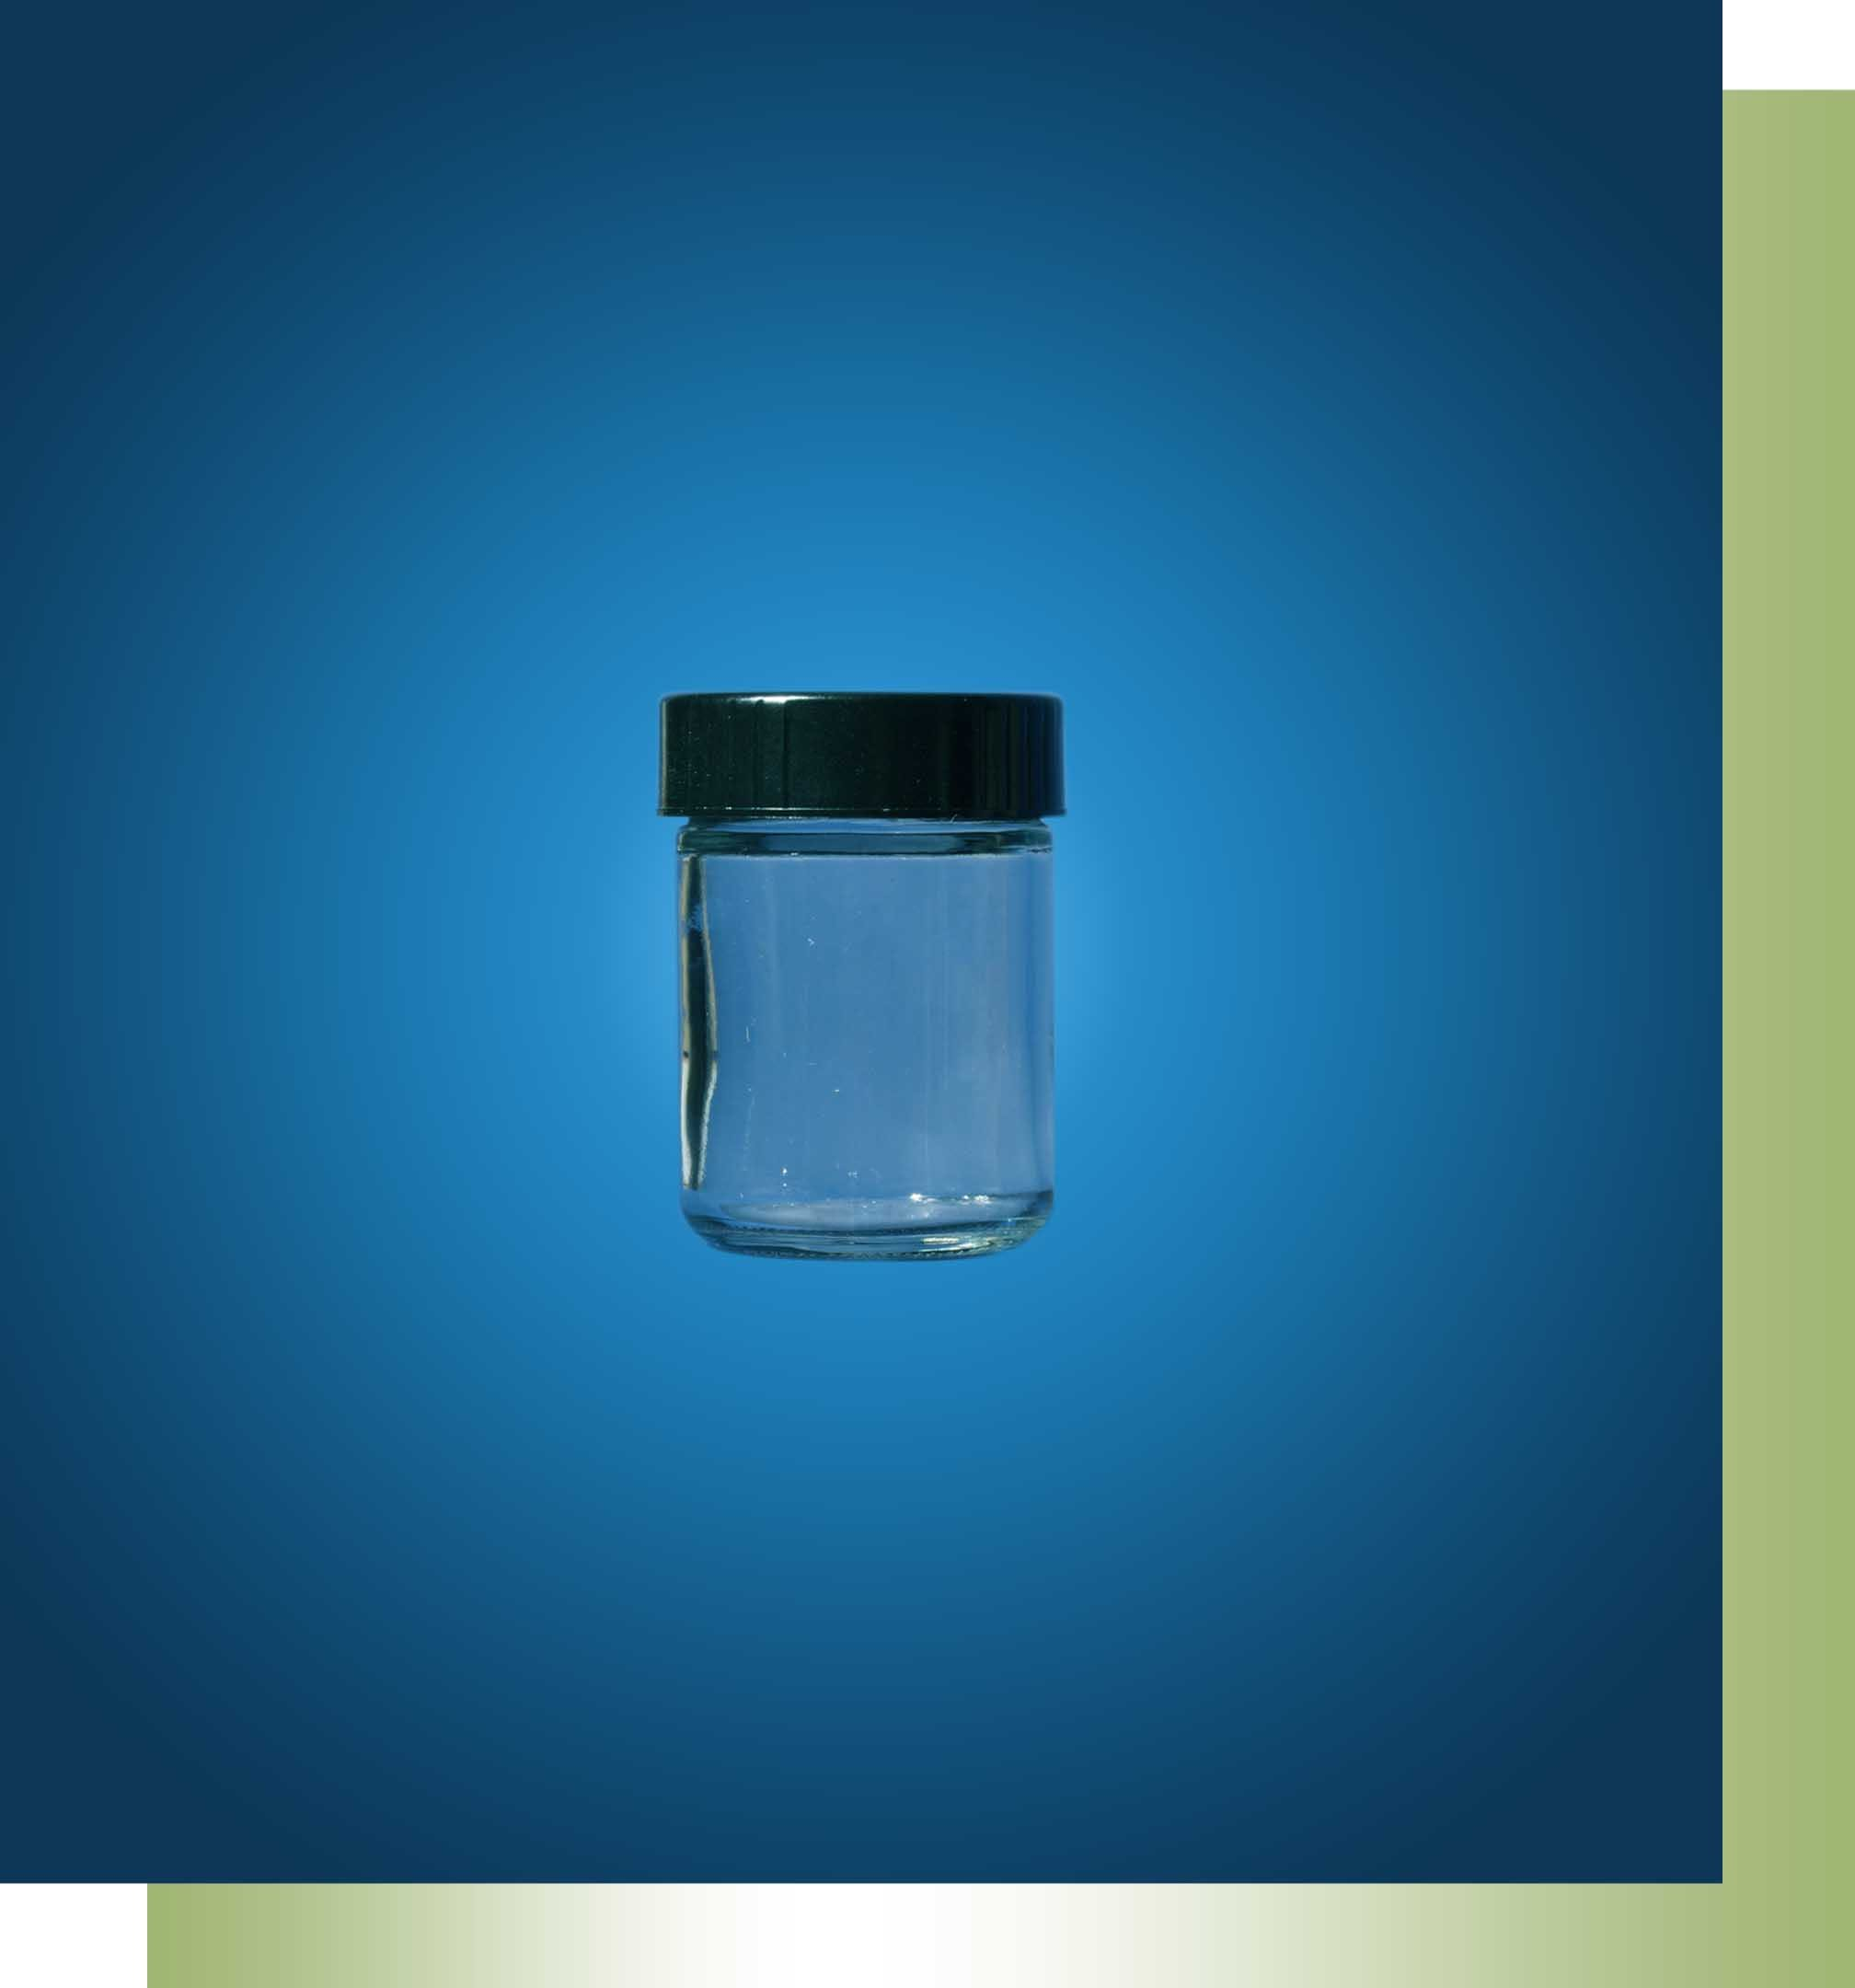 1 Ounce Clear Class Jar - Polycone Cap - Cosmetic Bottles & Jars - sold by Greenwood Products, Inc.